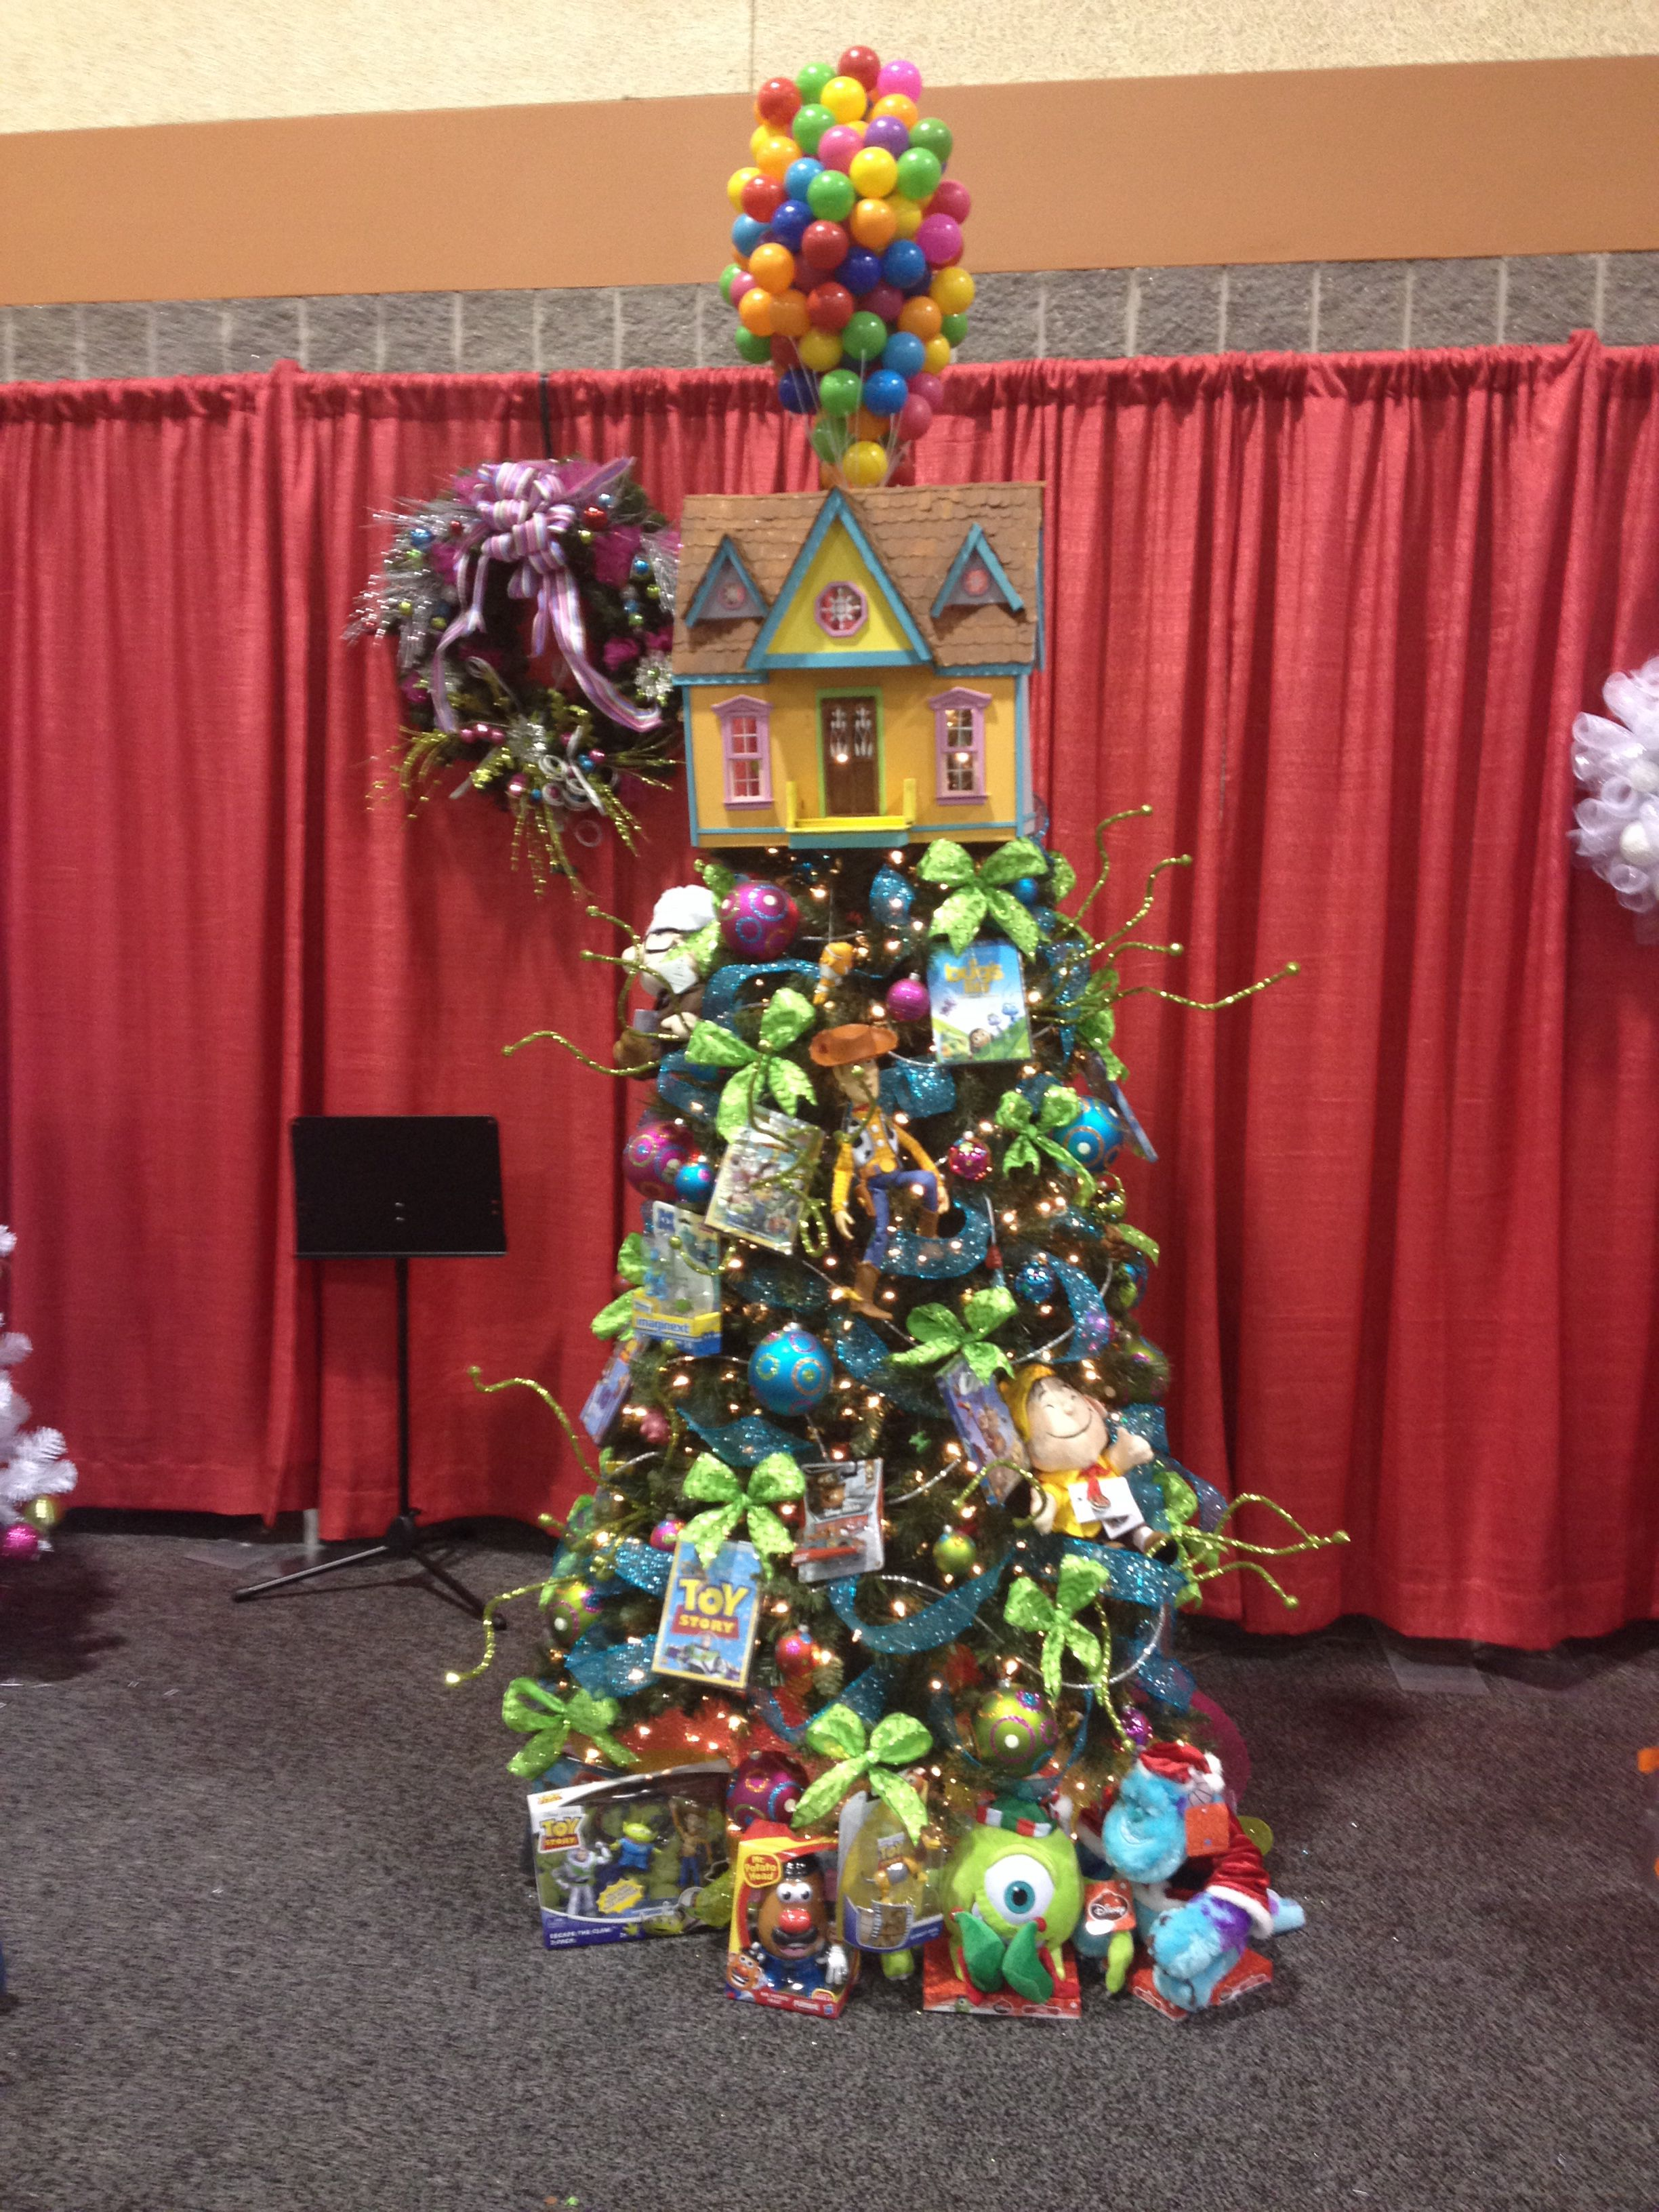 disney pixar themed christmas tree up balloon house tree topper - Disney Christmas Tree Topper